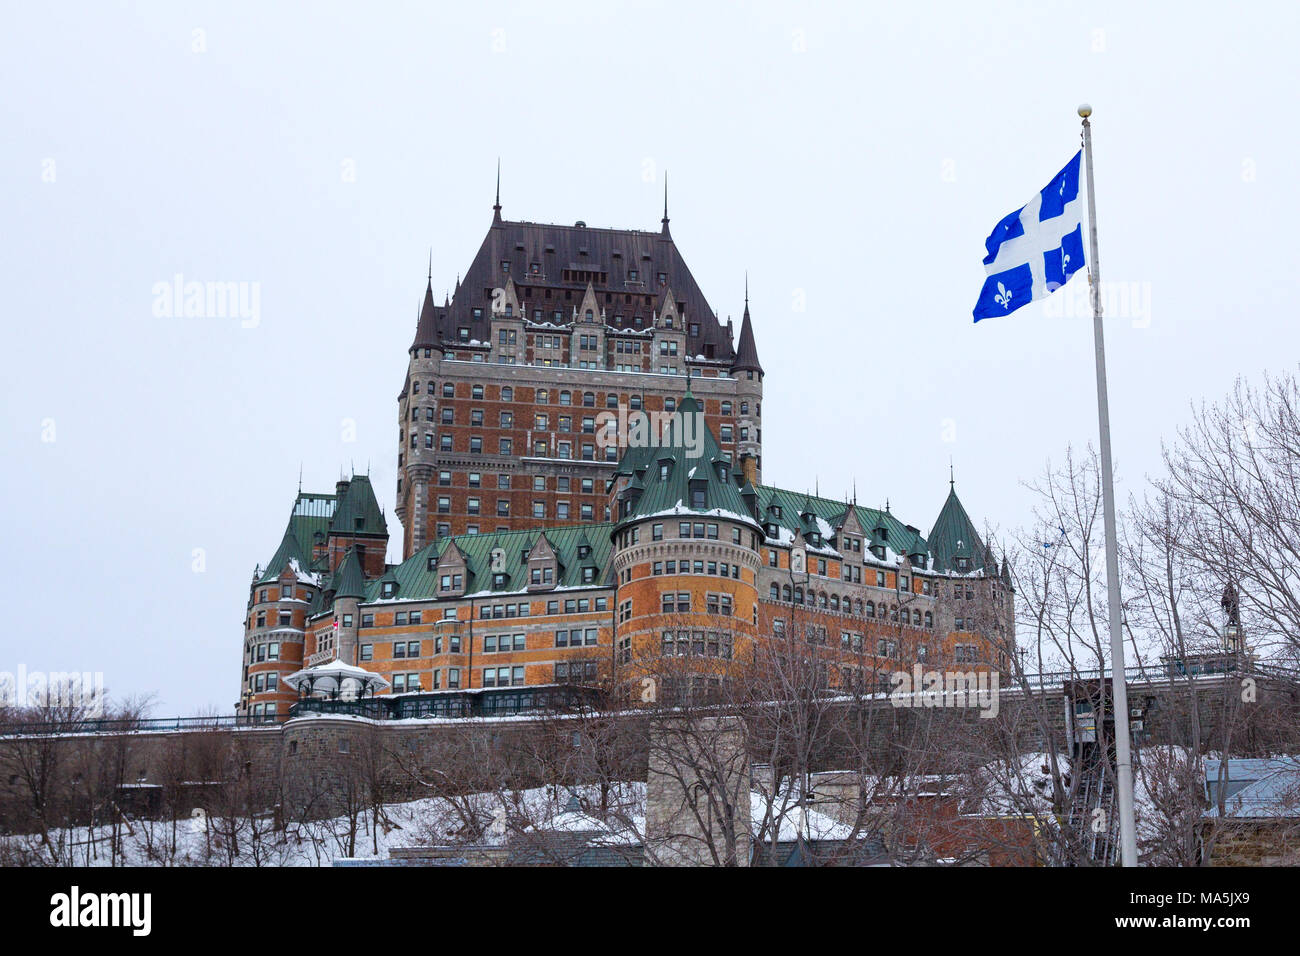 View of Frontenac Castel (Chateau de Frontenac, in French) in winter under the snow with a Quebec flag waiving. The Château Frontenac is a grand hotel - Stock Image